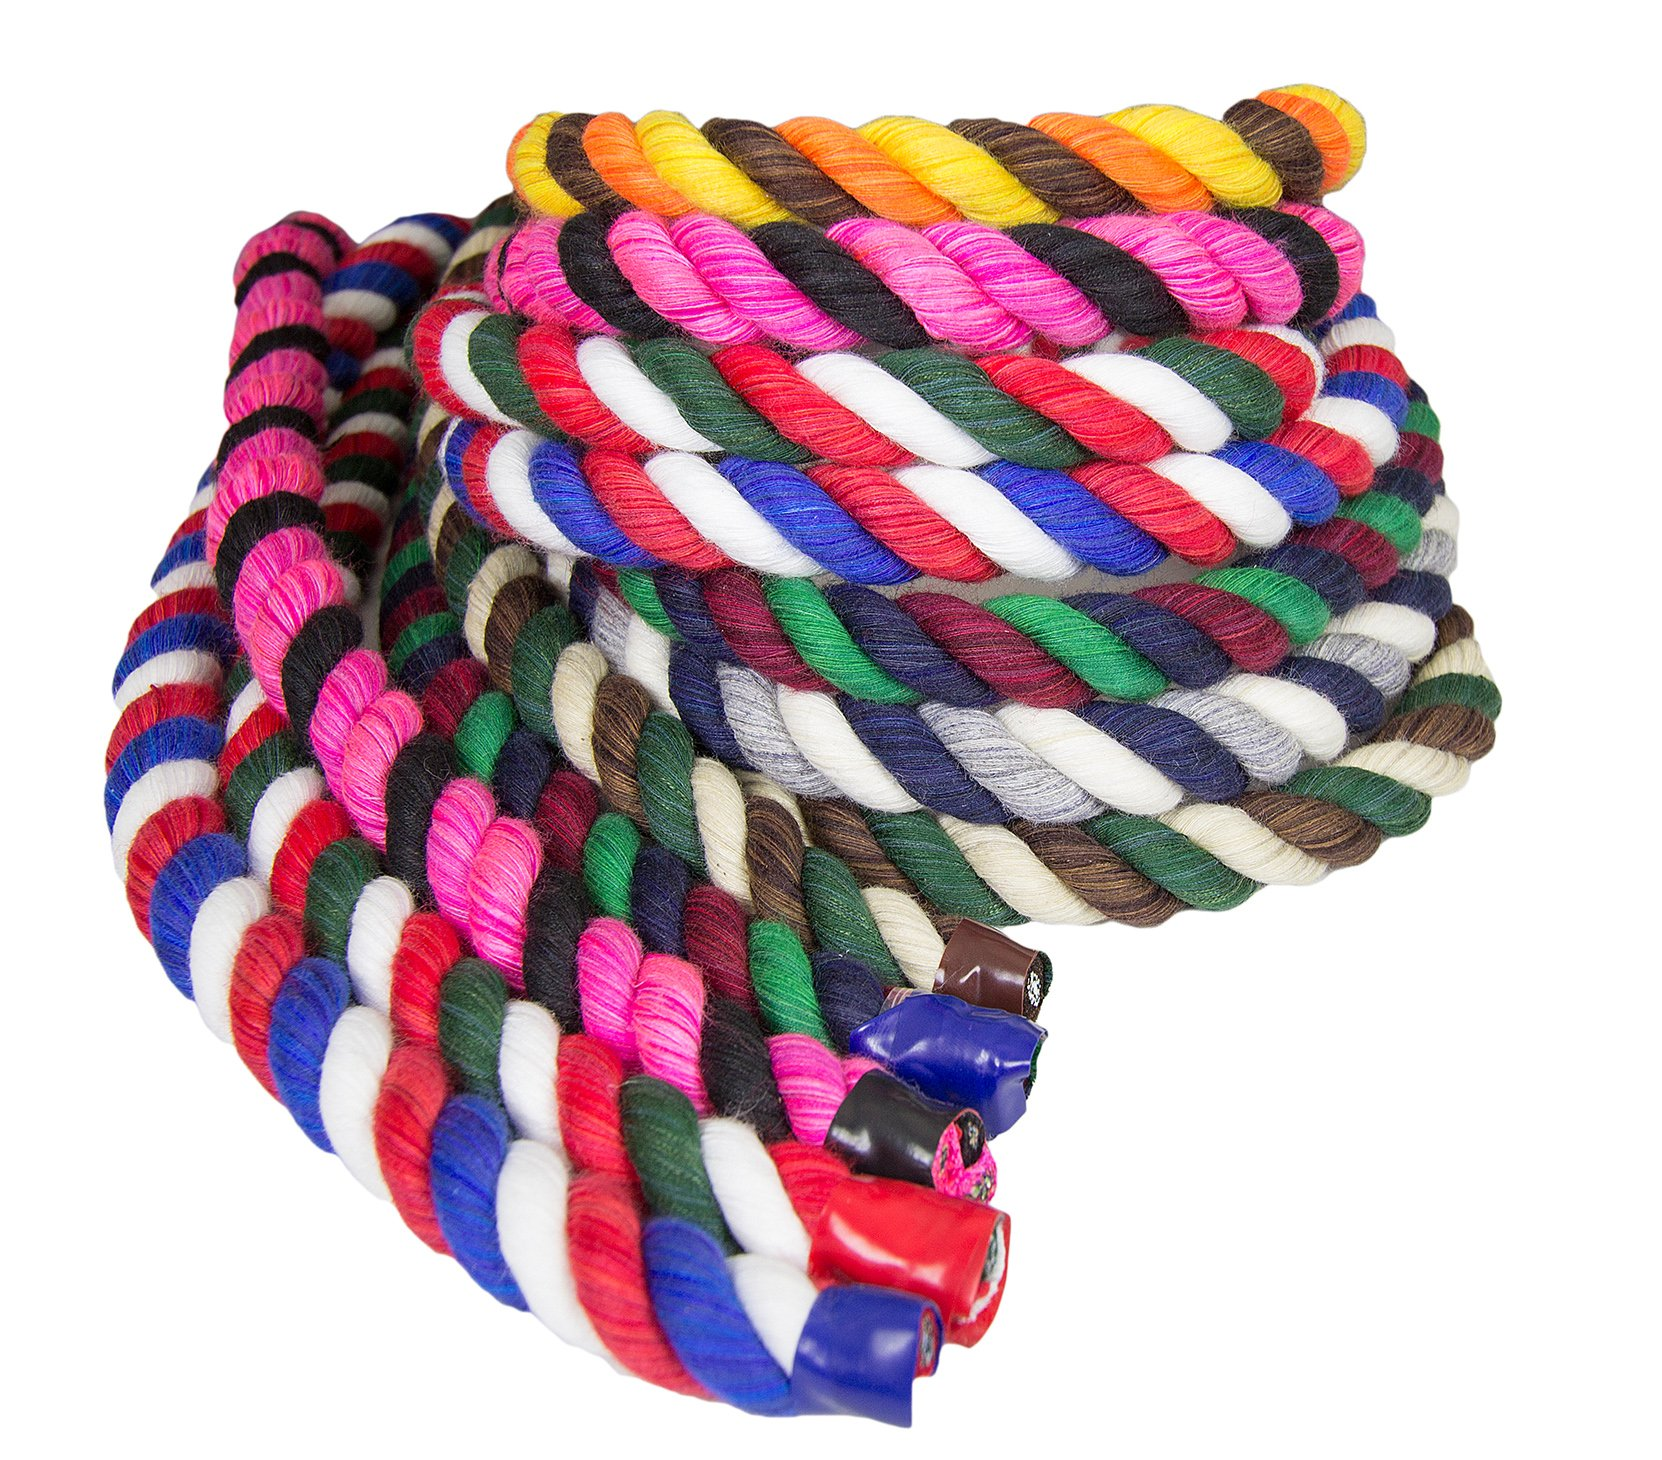 Ravenox Colorful Twisted Cotton Rope | (Black)(5/8 Inch x 100 Feet) | Made in The USA | Custom Color Cordage for Sports, Décor, Pet Toys, Crafts, Macramé & General Use | Rope by The Foot & Diameter